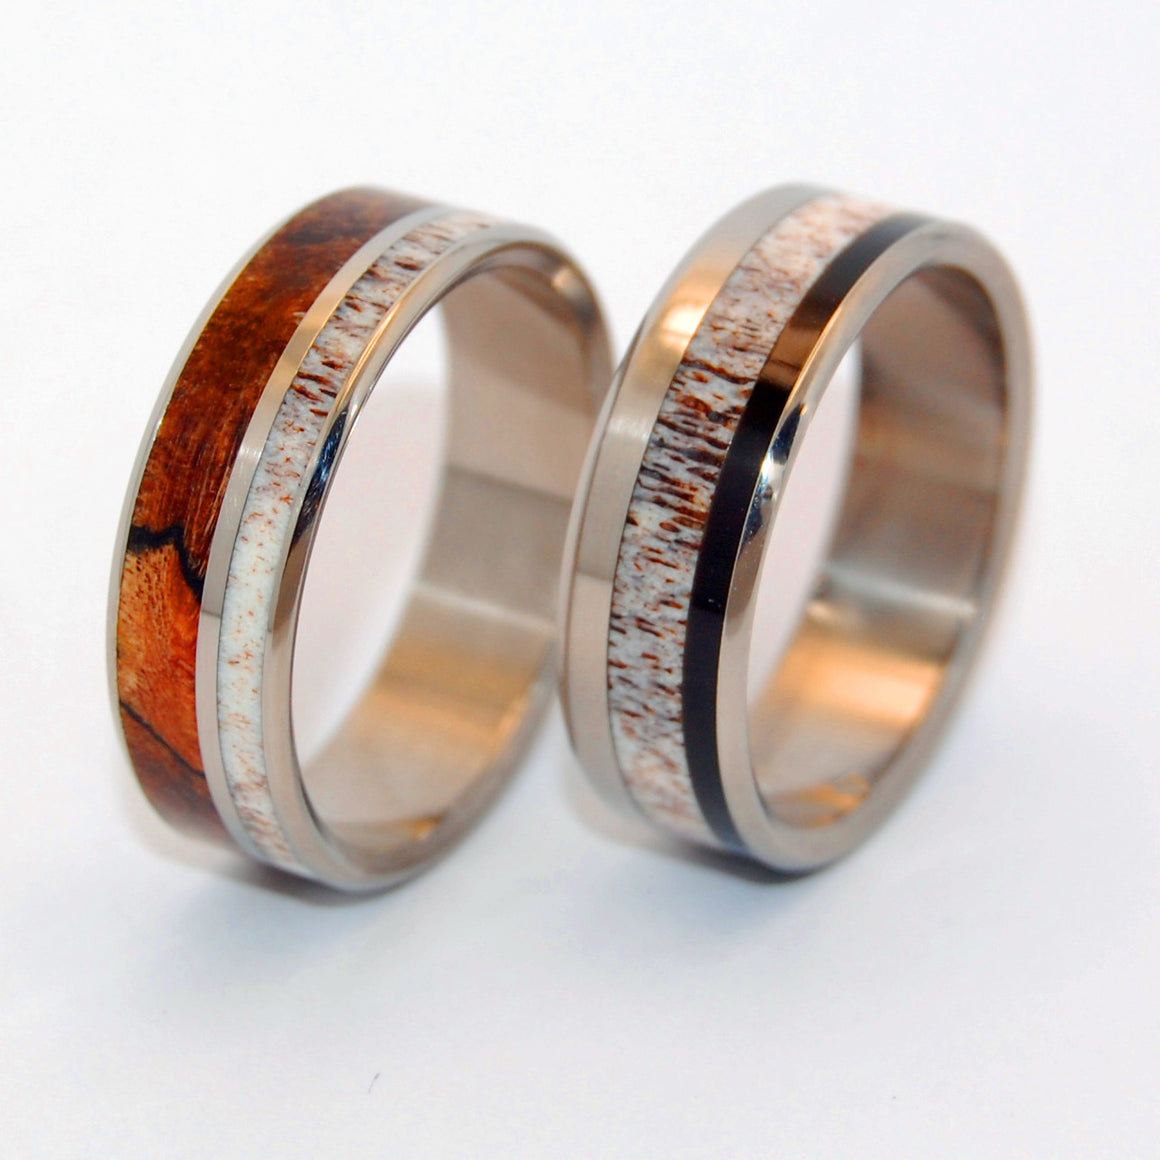 American Man and His Partner | Horn and Titanium Wedding Rings